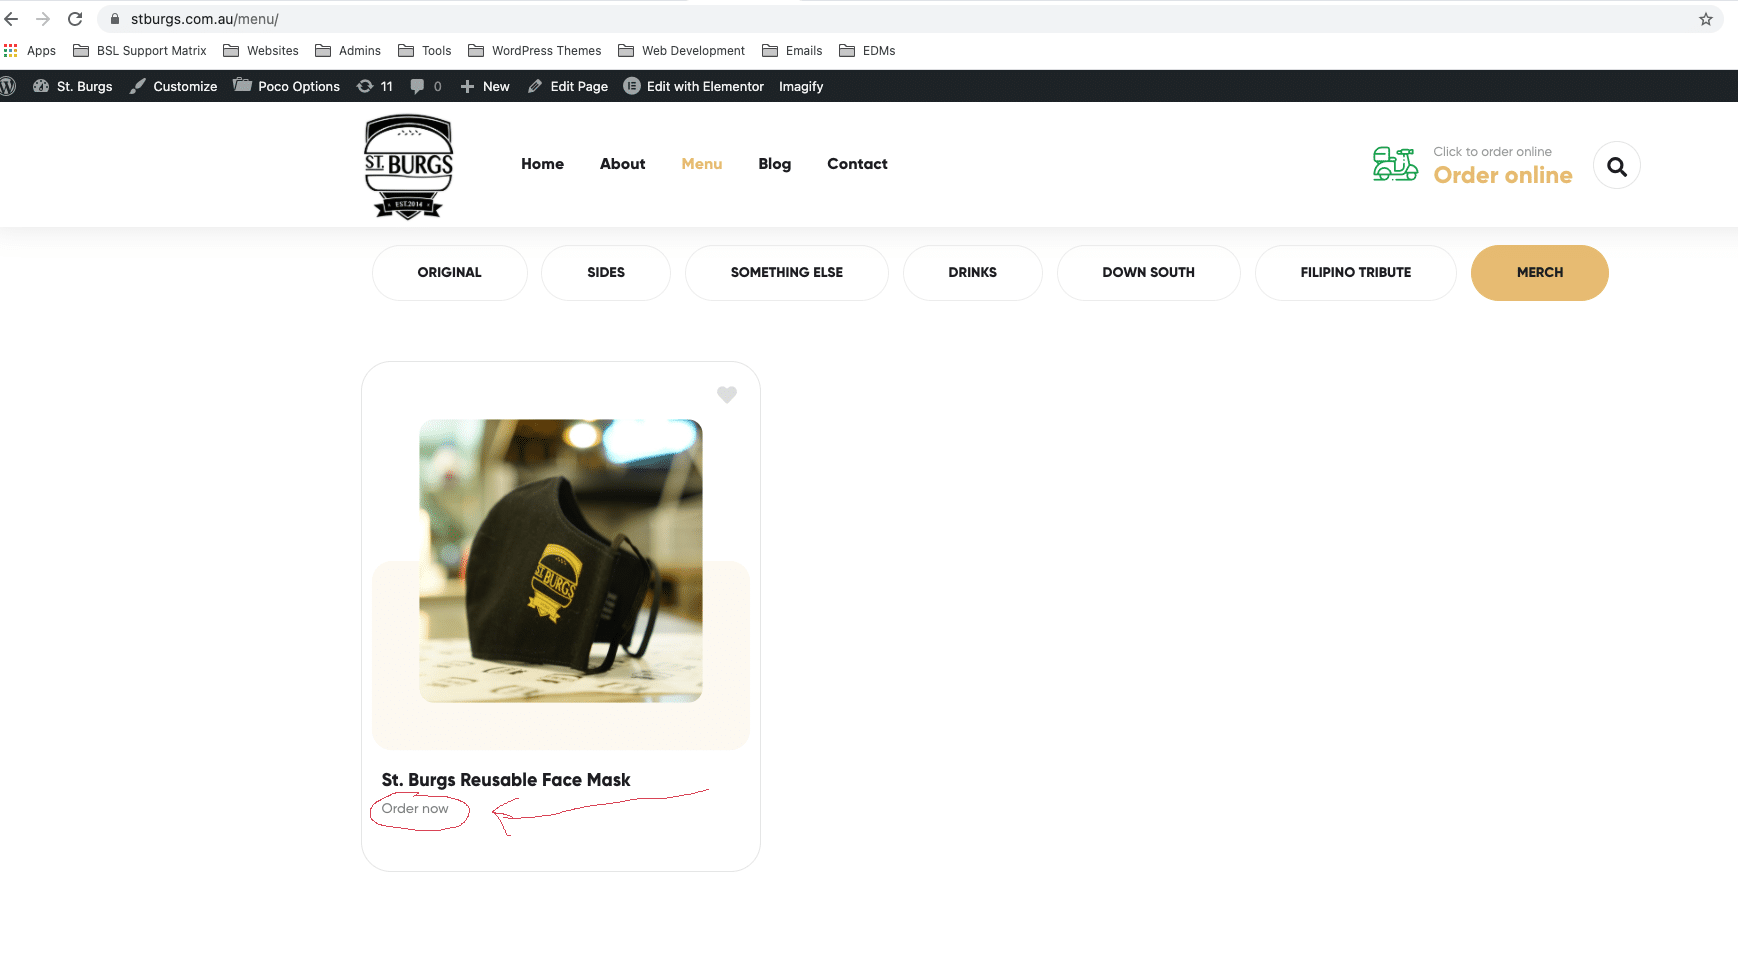 Product list issue